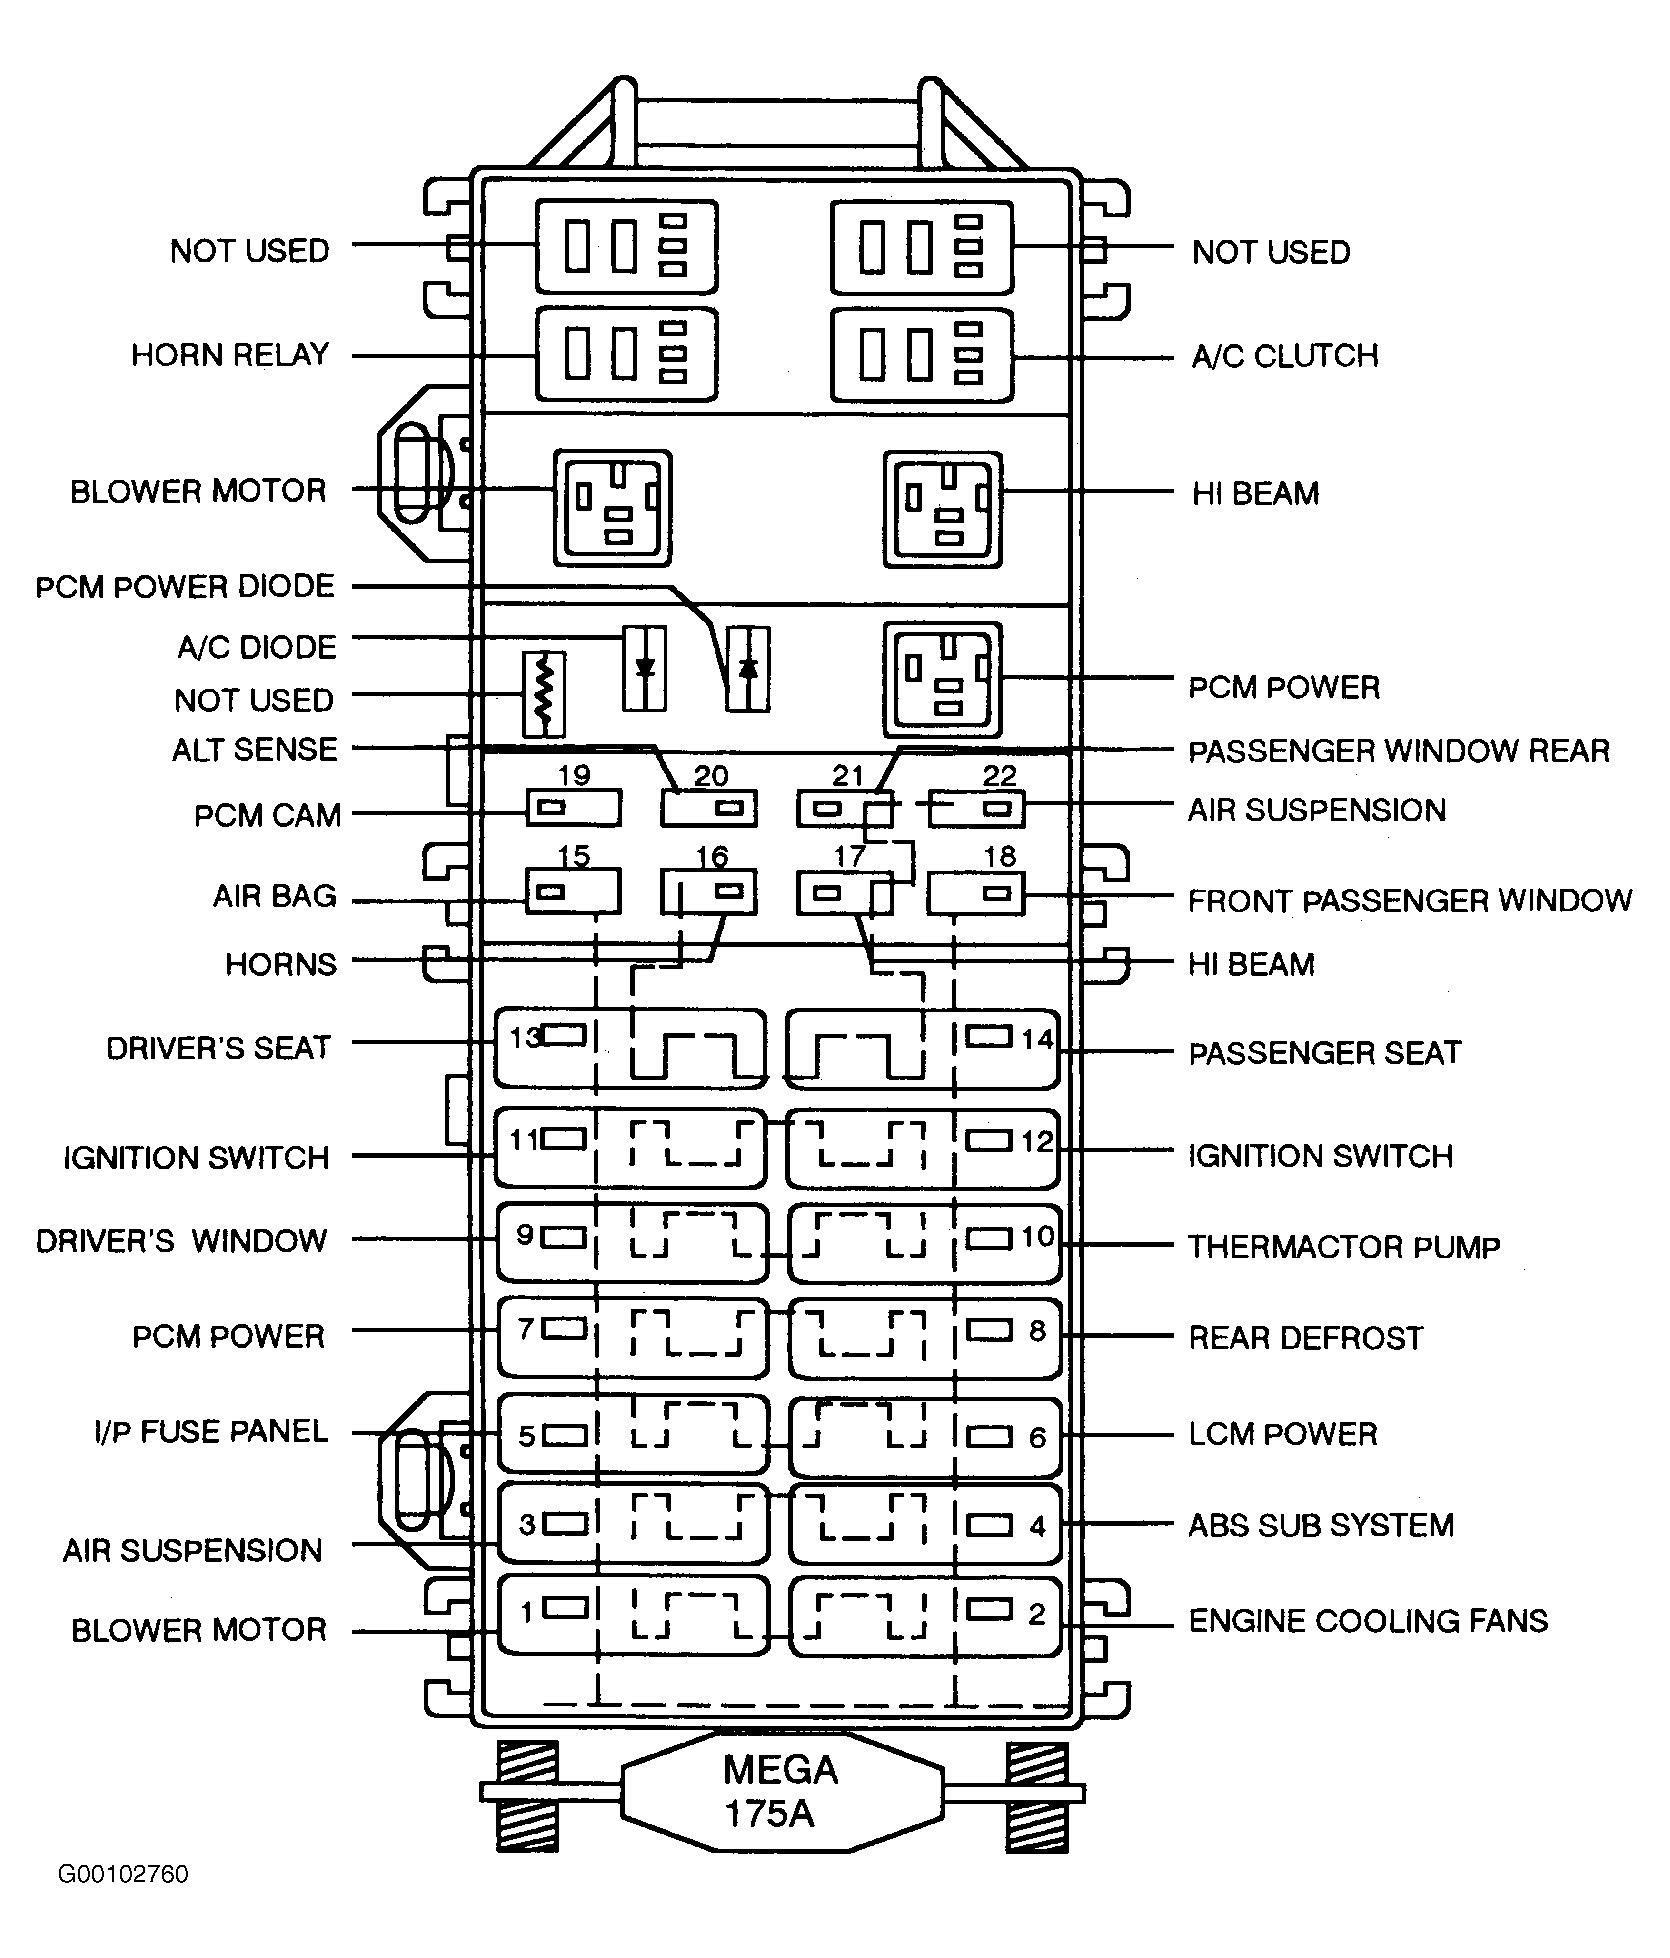 1990 f350 fuse box diagram